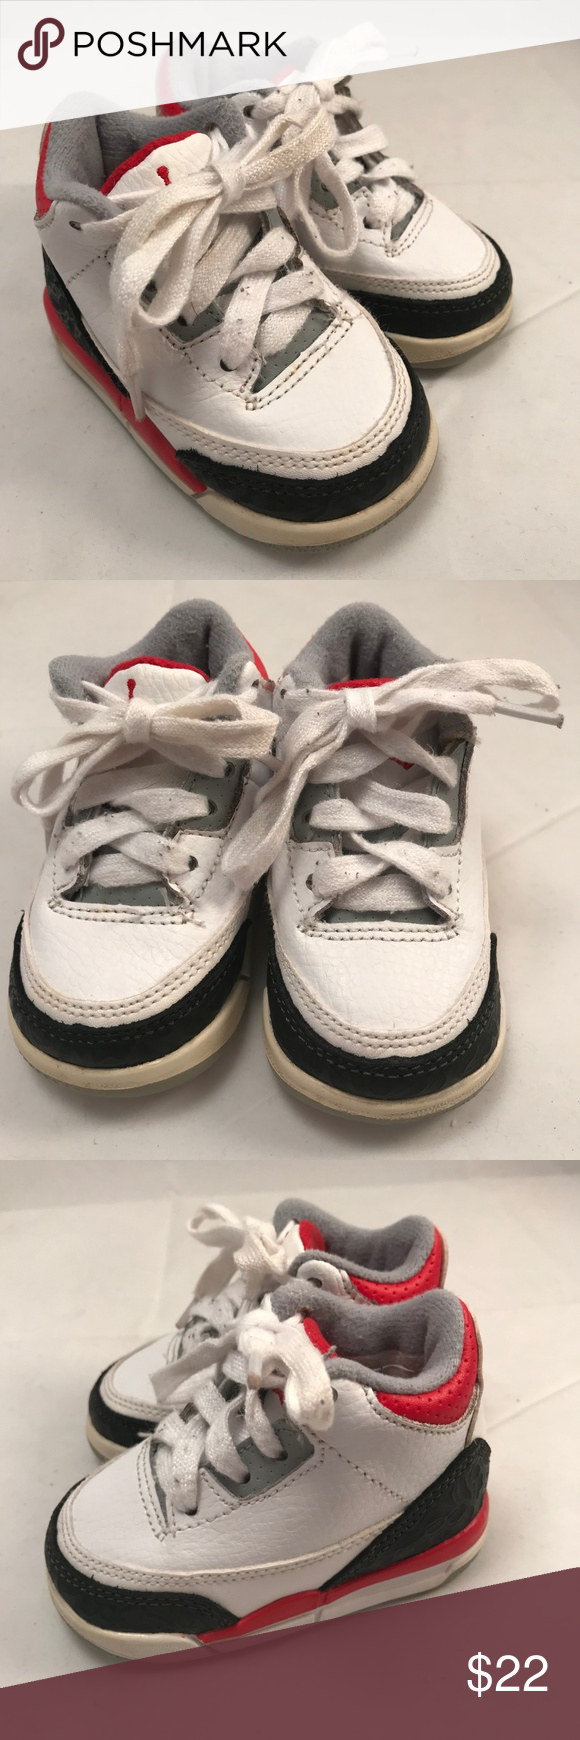 2d14b63f38fe Nike Air Jordan III 832033-120 White Retro NIKE Toddler Air Jordan Retro  Excellent Condition 3C Nike Shoes Baby   Walker